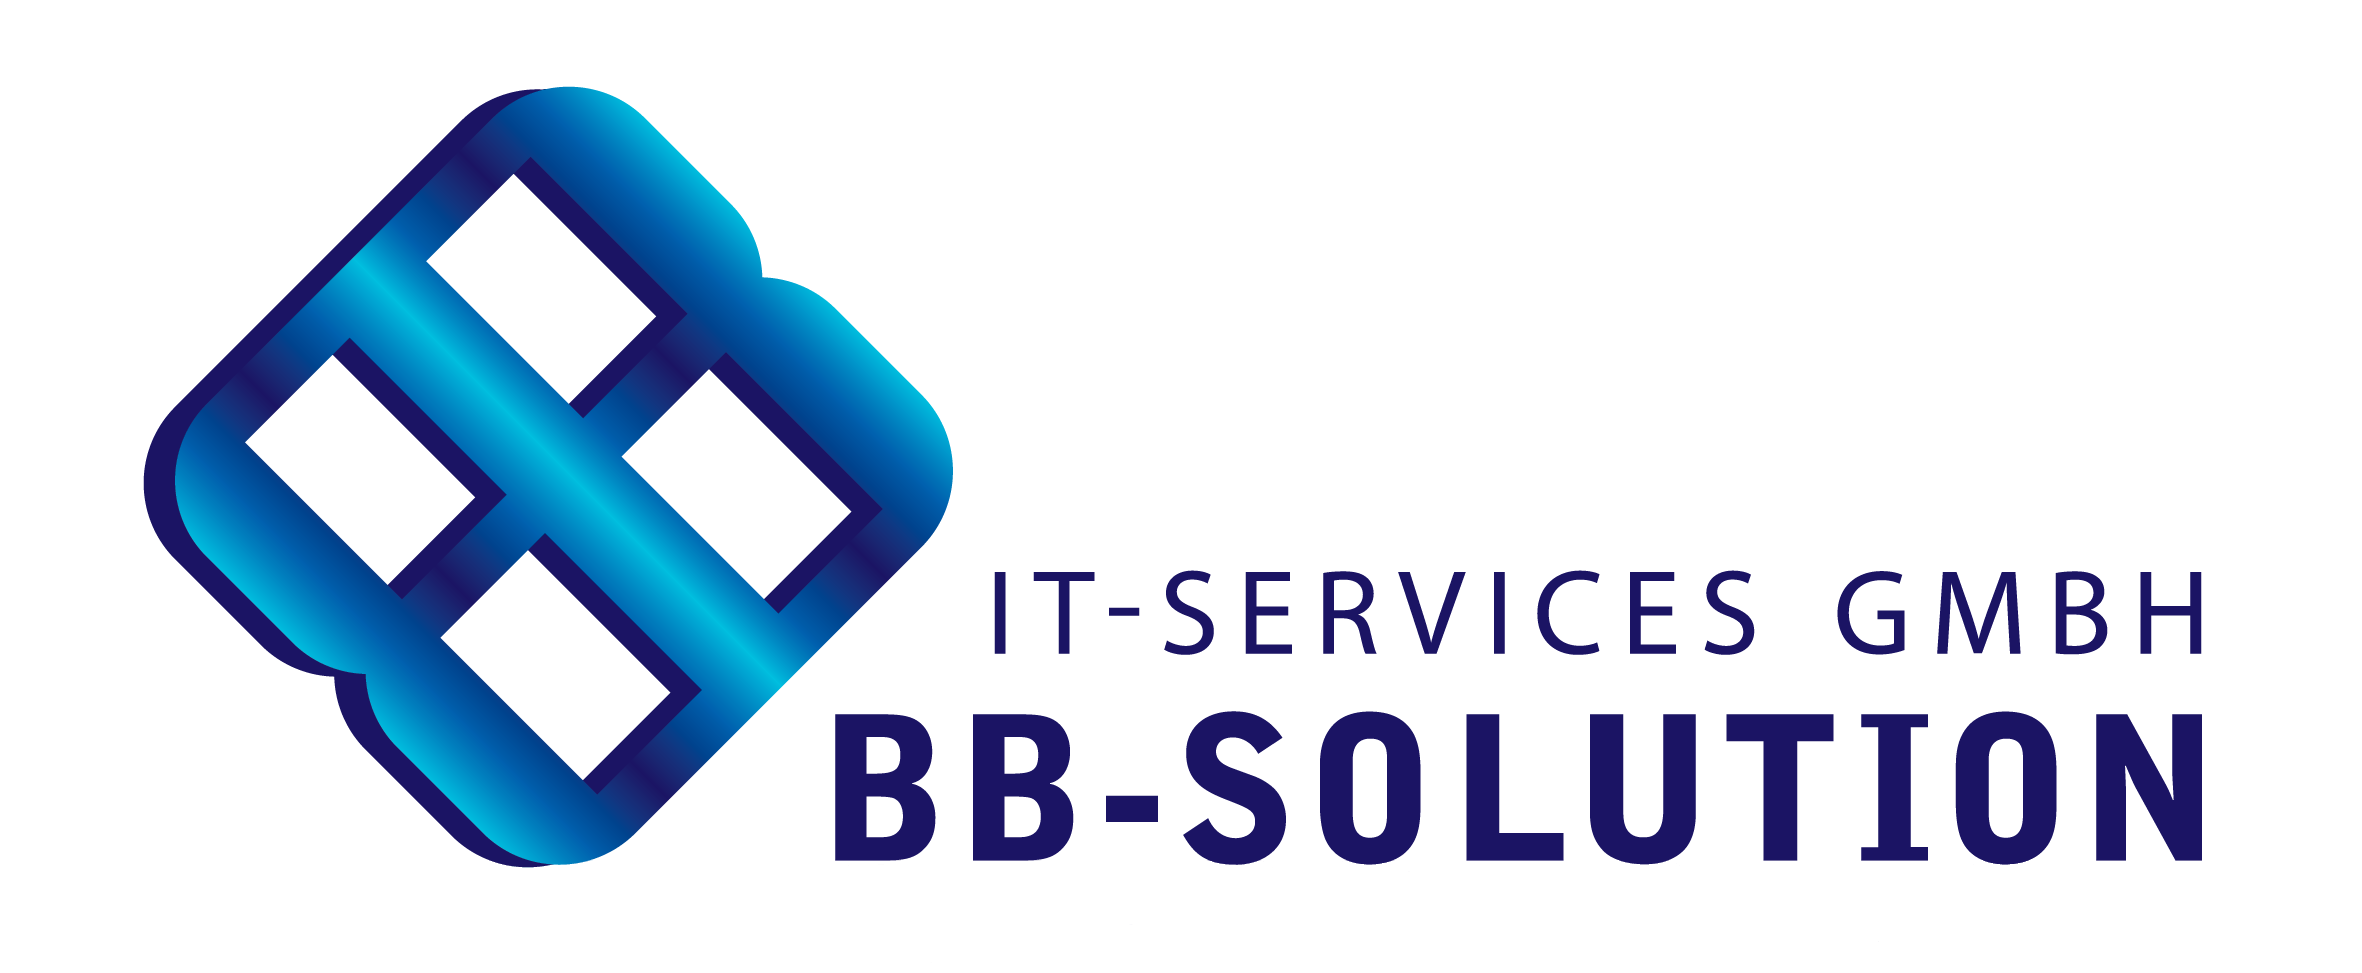 BB-Solution IT-Services GmbH